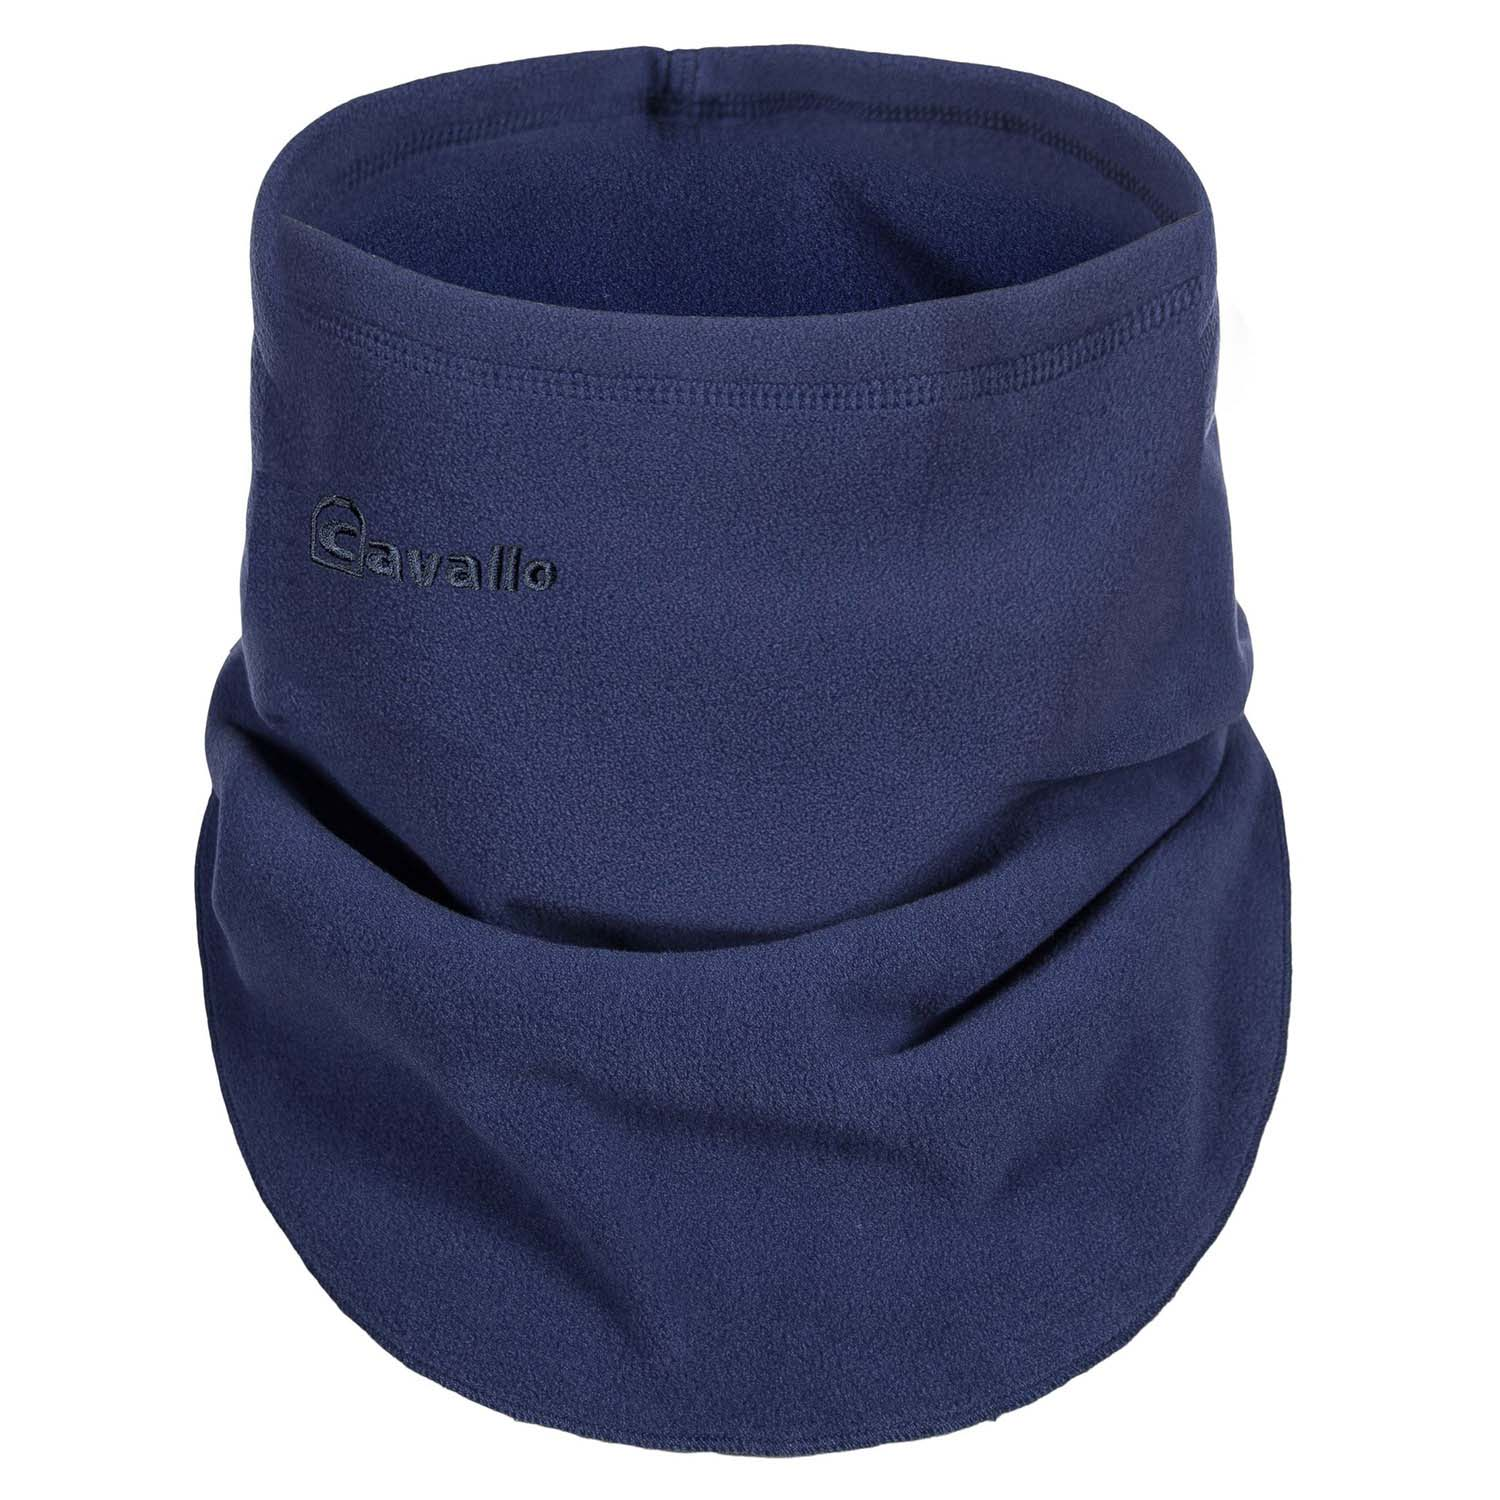 Cavallo Lavanti Neck Gaiter